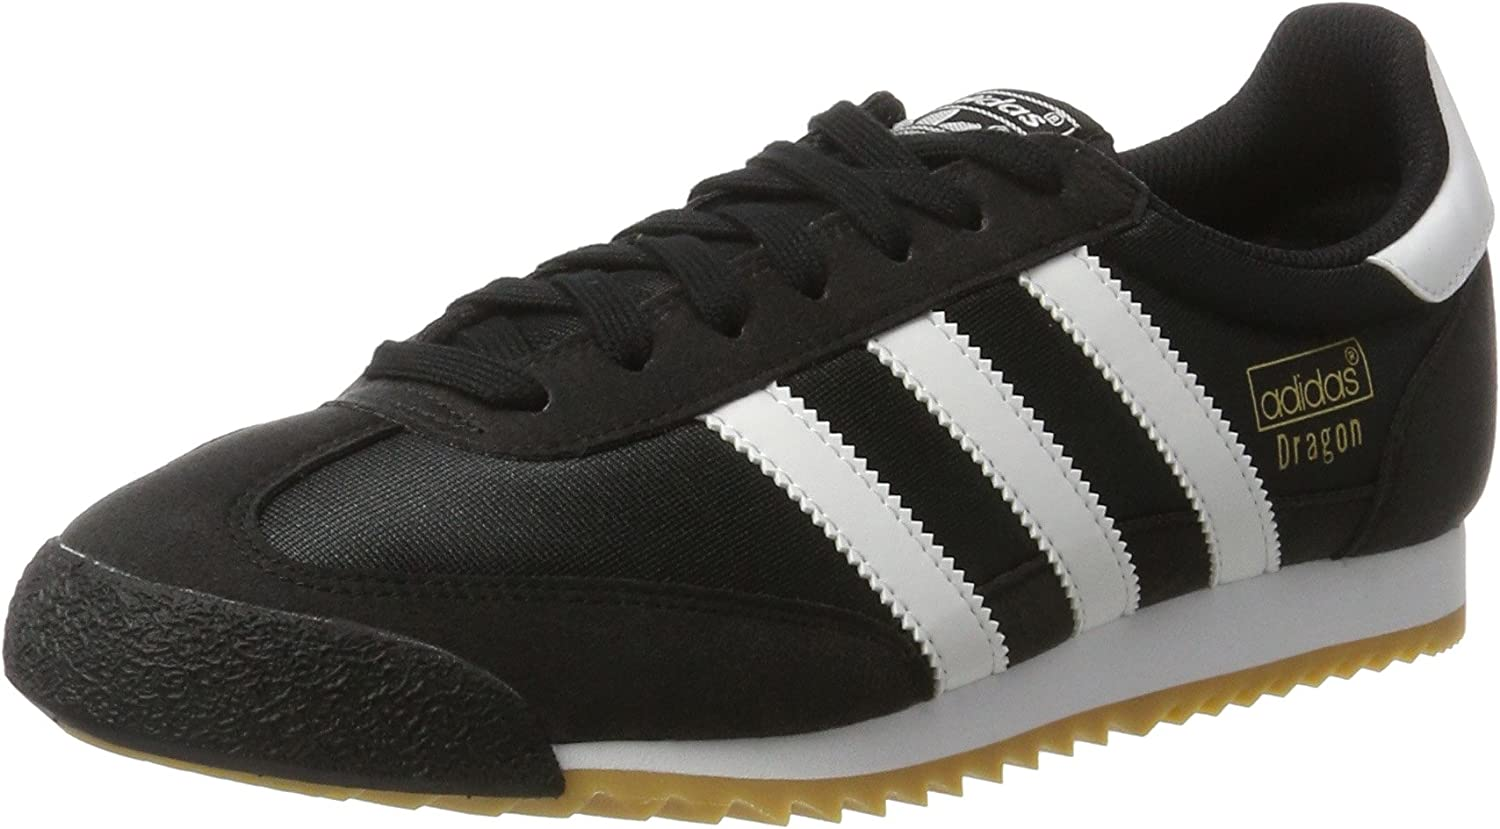 Adidas Dragon Og Sneakers Basses, Homme